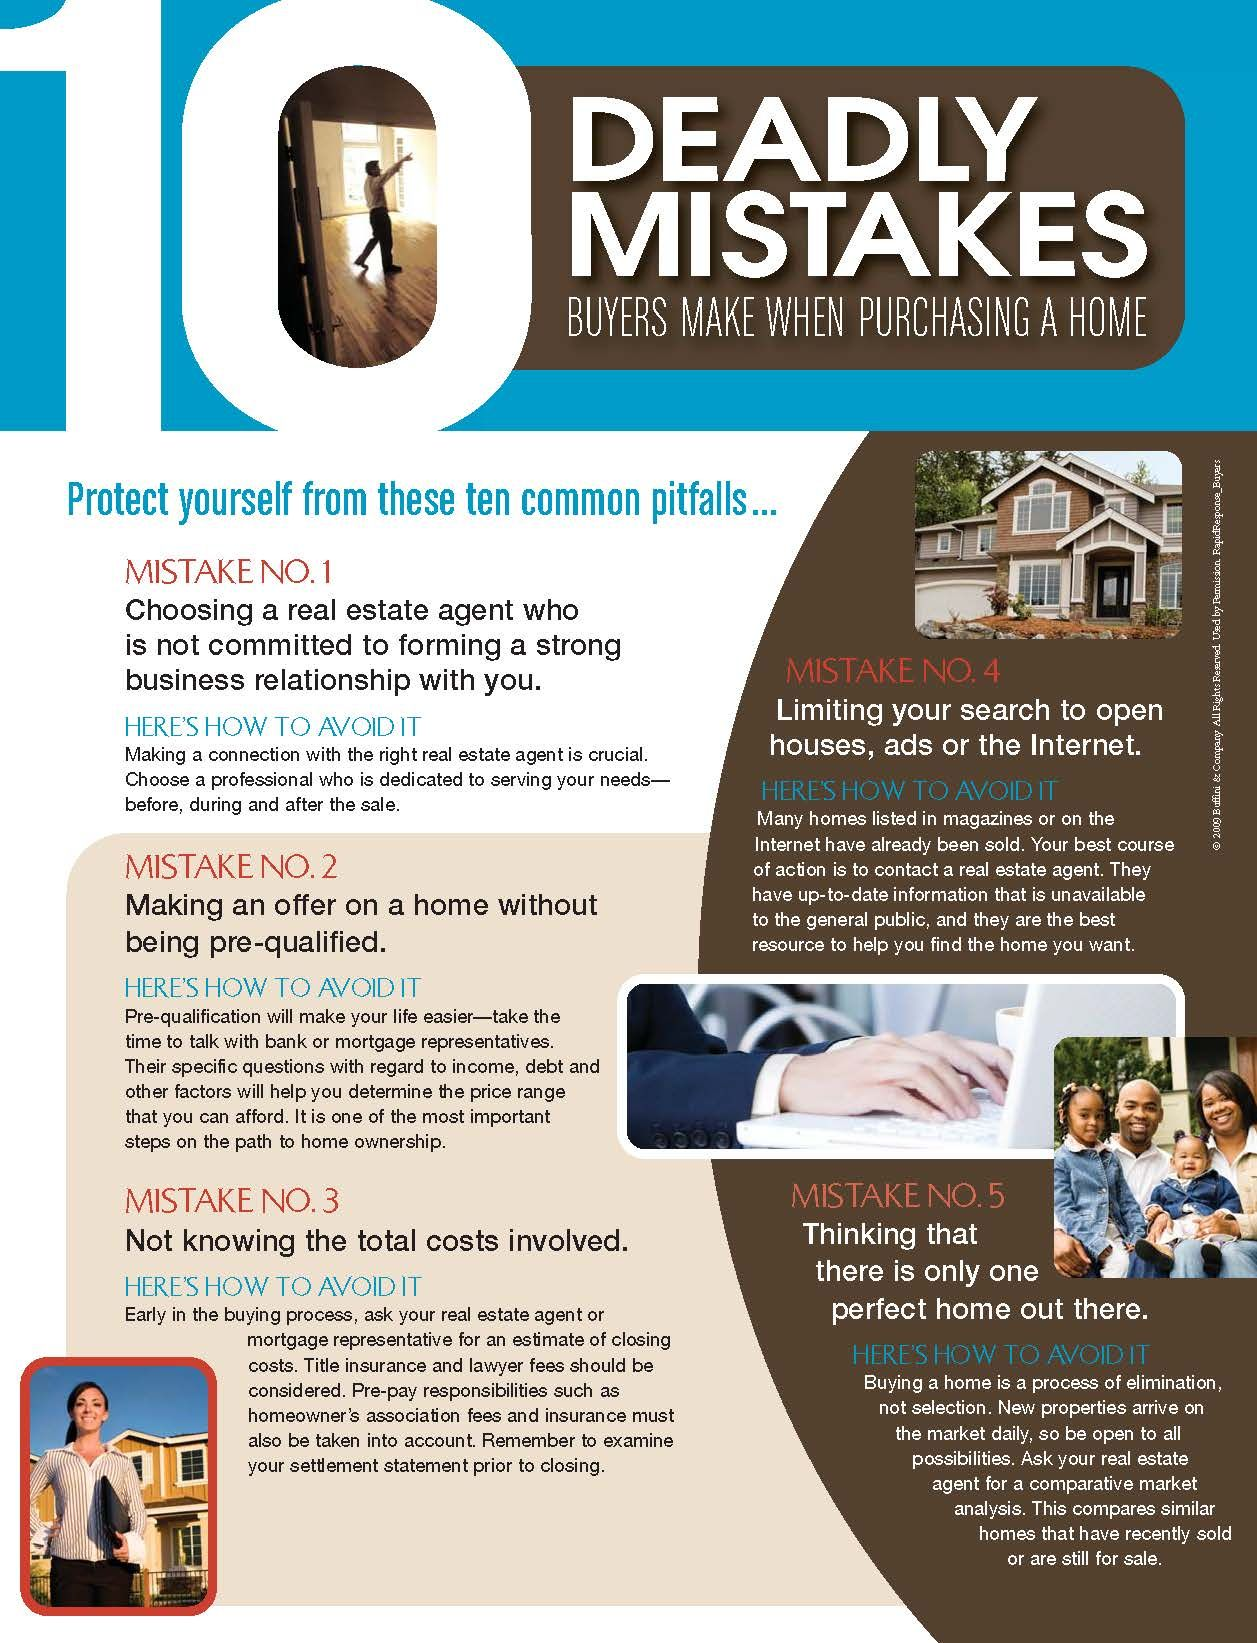 More Mistakes Homebuyers Often Make Contact Me Today So I Can